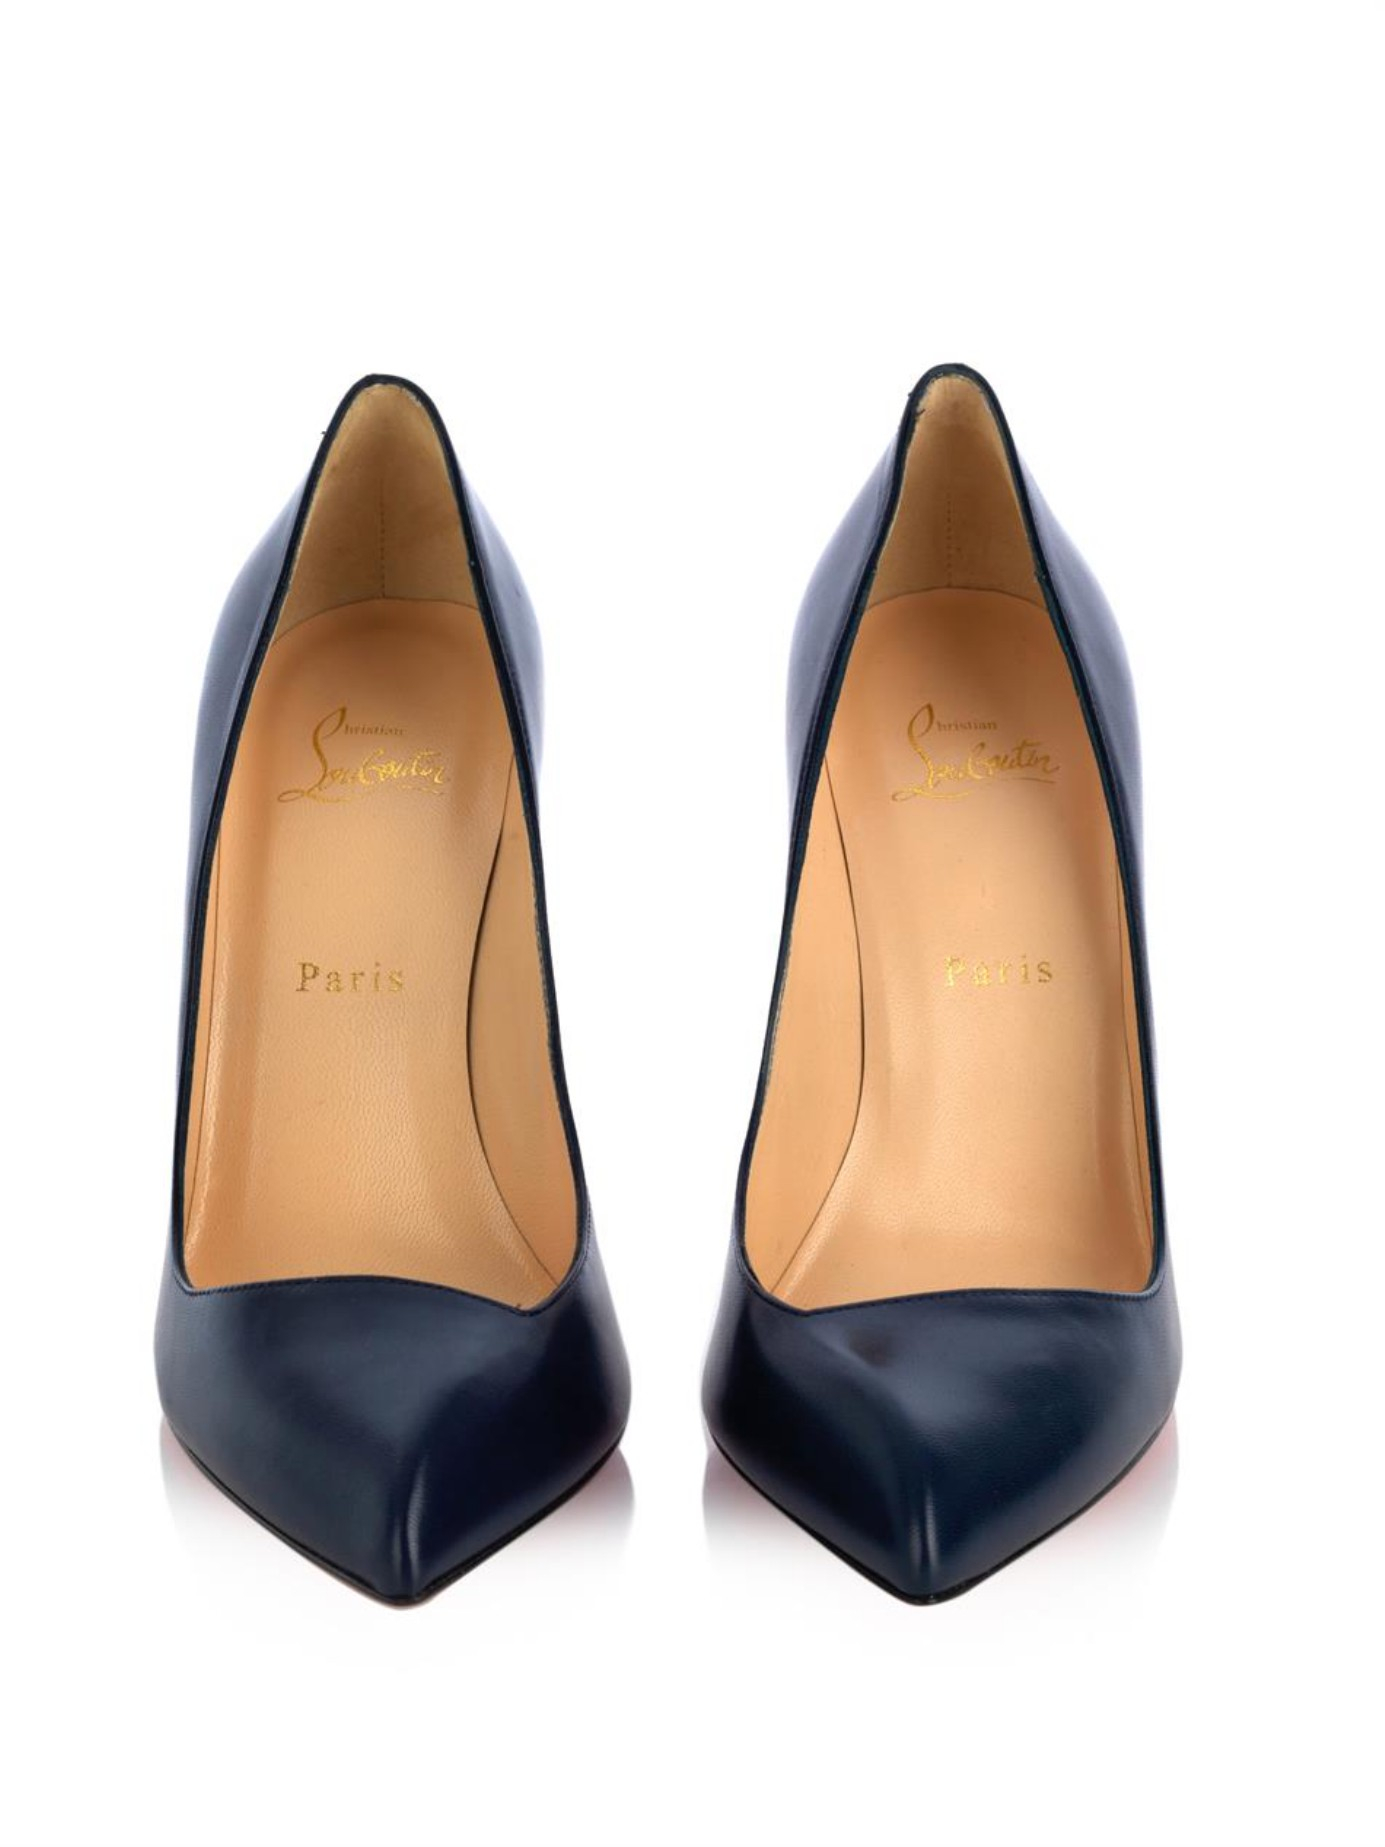 christian louboutin replicas men - Christian louboutin Corneille 100Mm Leather Pumps in Blue (Navy ...